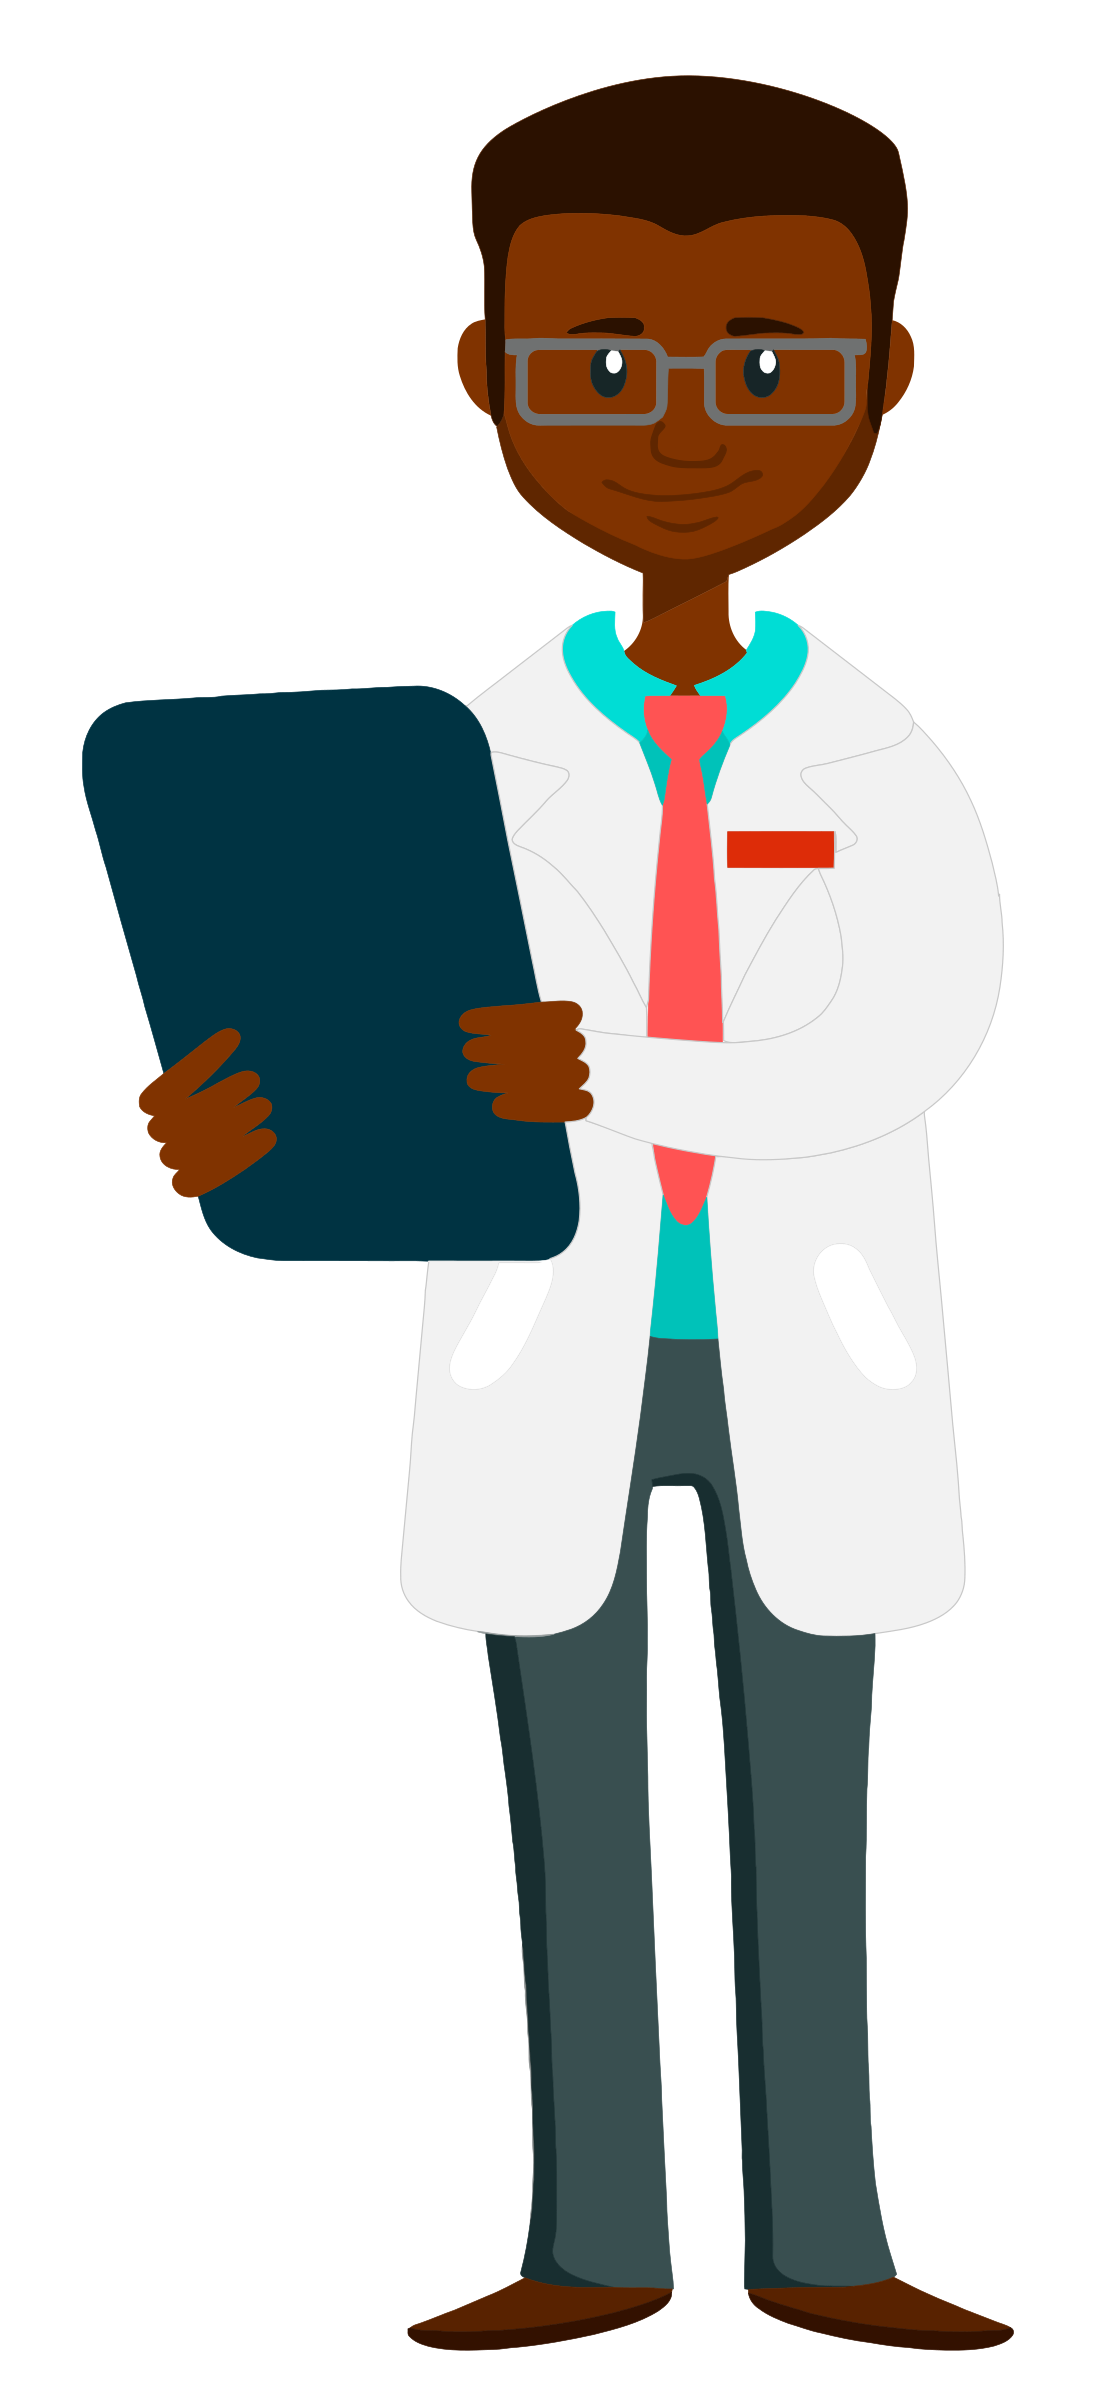 Professional clipart healthcare professional. Doctor holding clipboard big